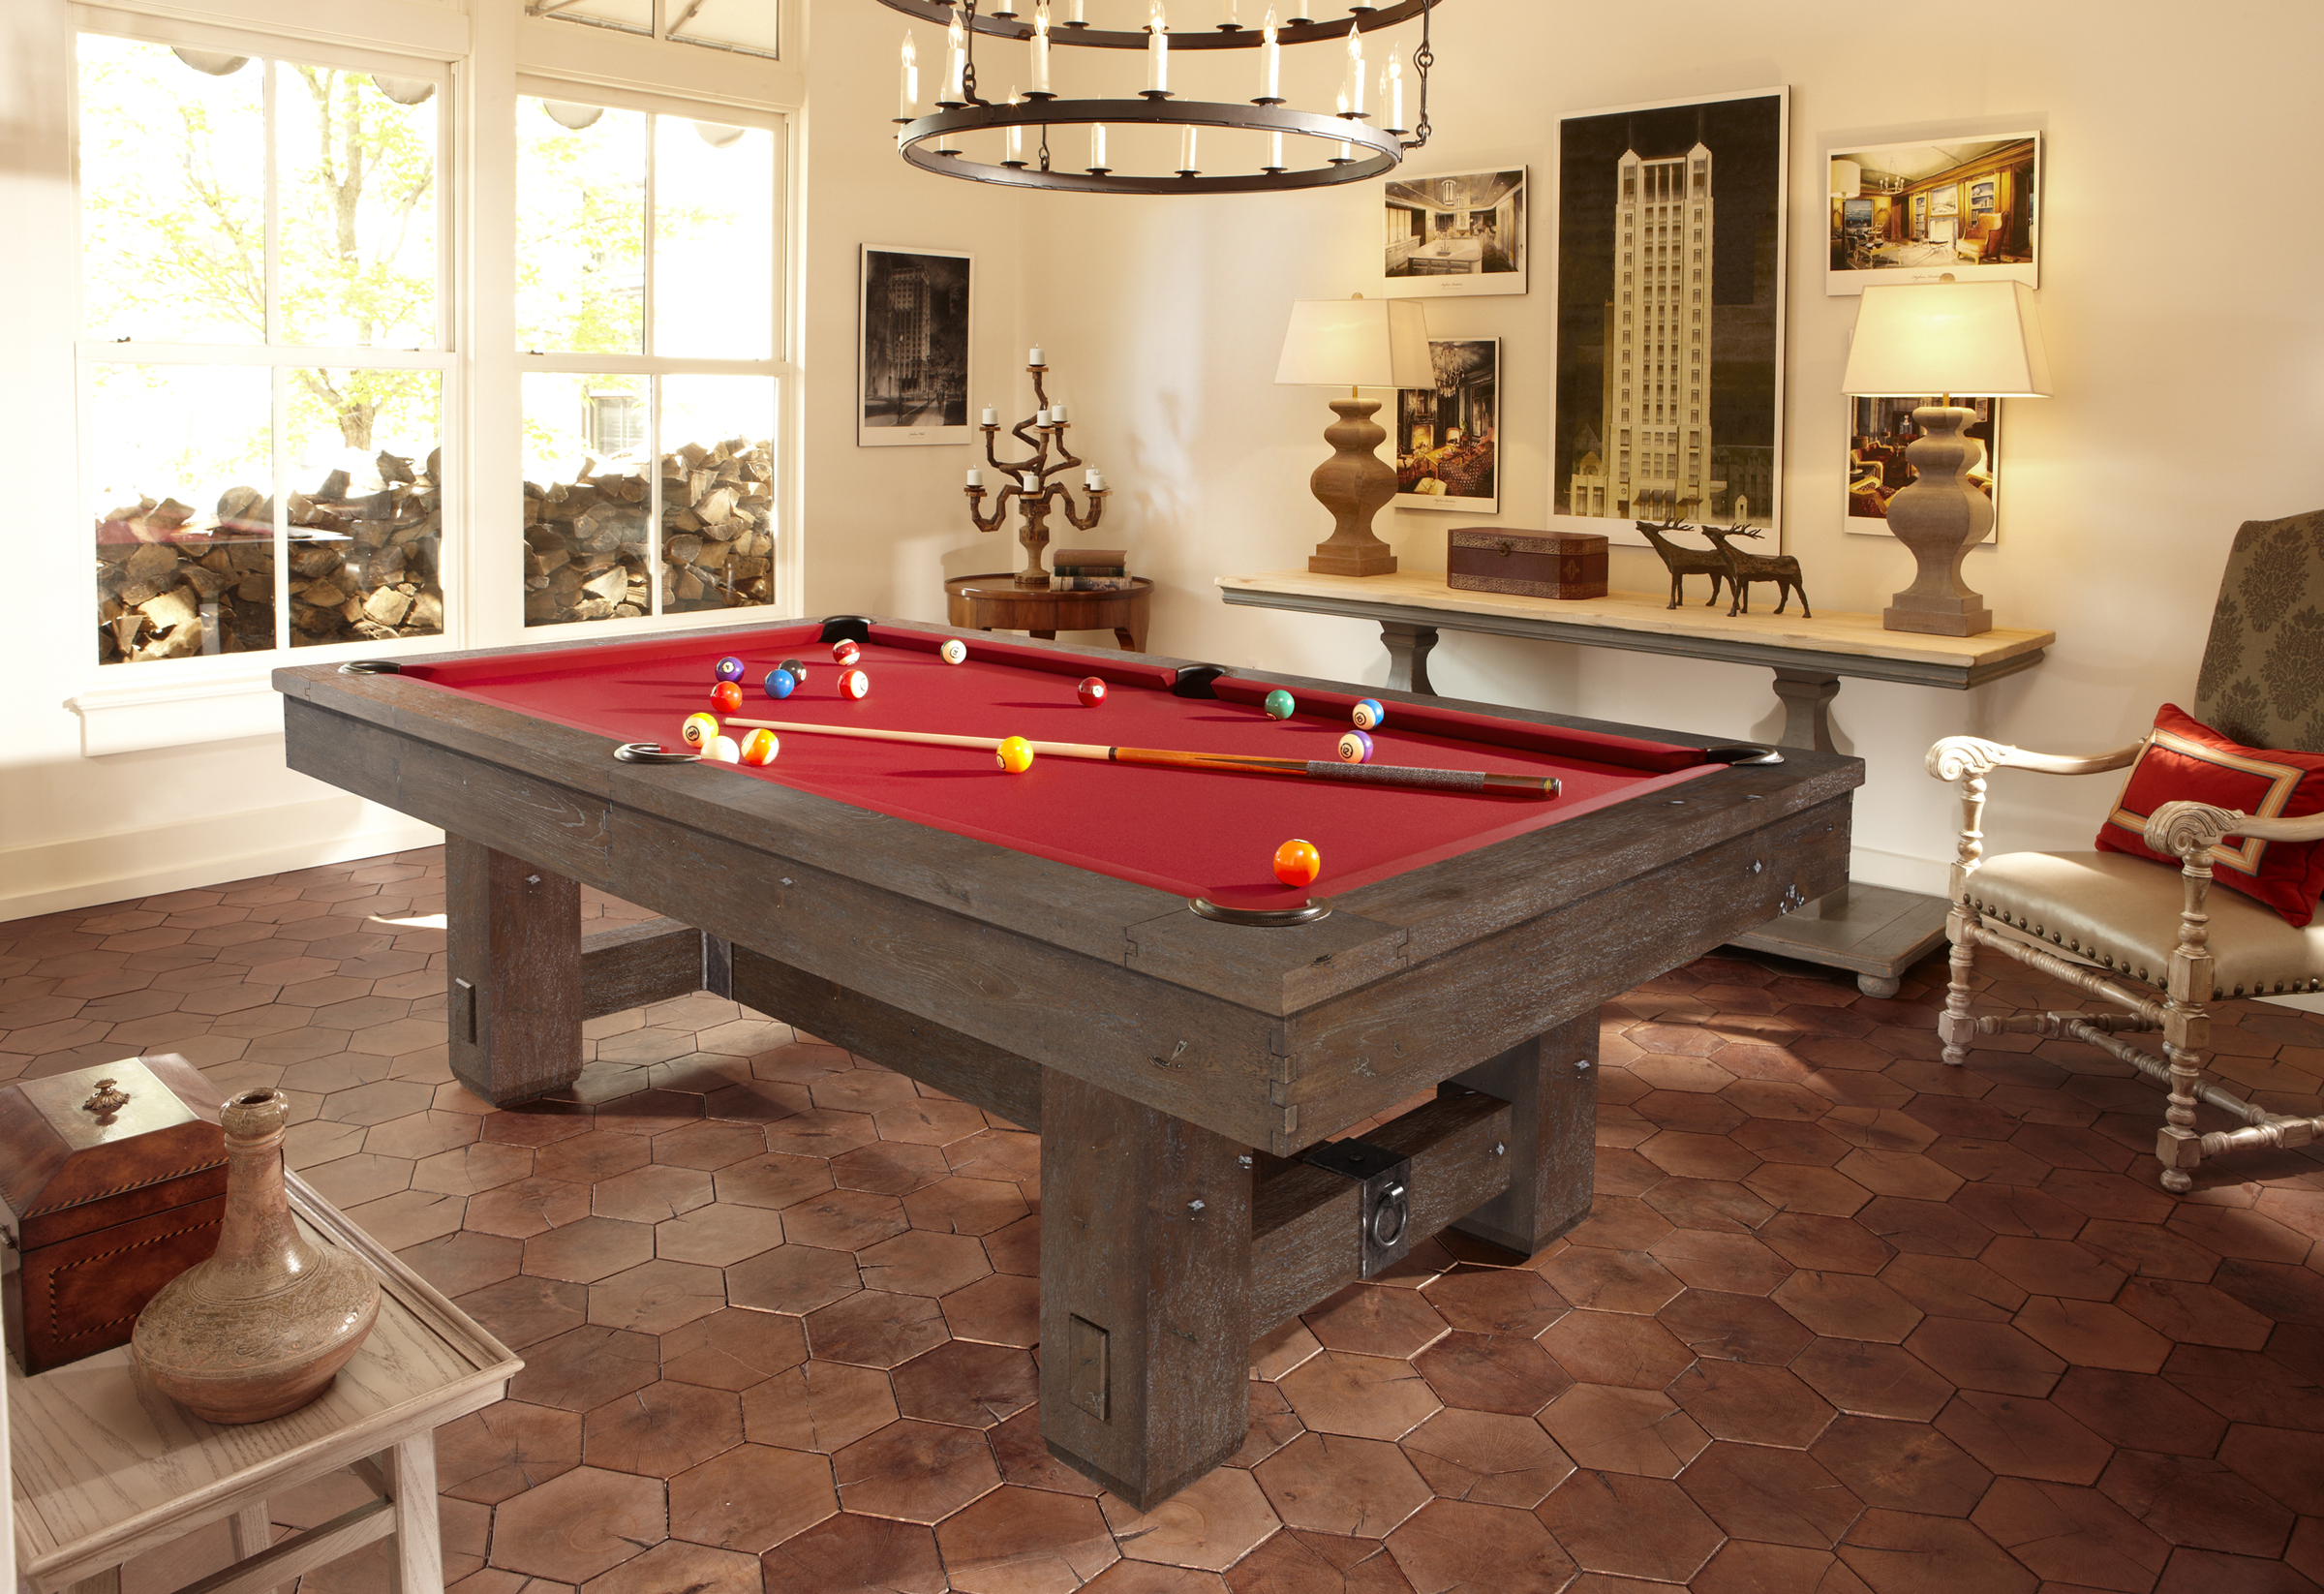 Save On Patio Furniture Pool Tables More At Watsons Great - Nearest pool table